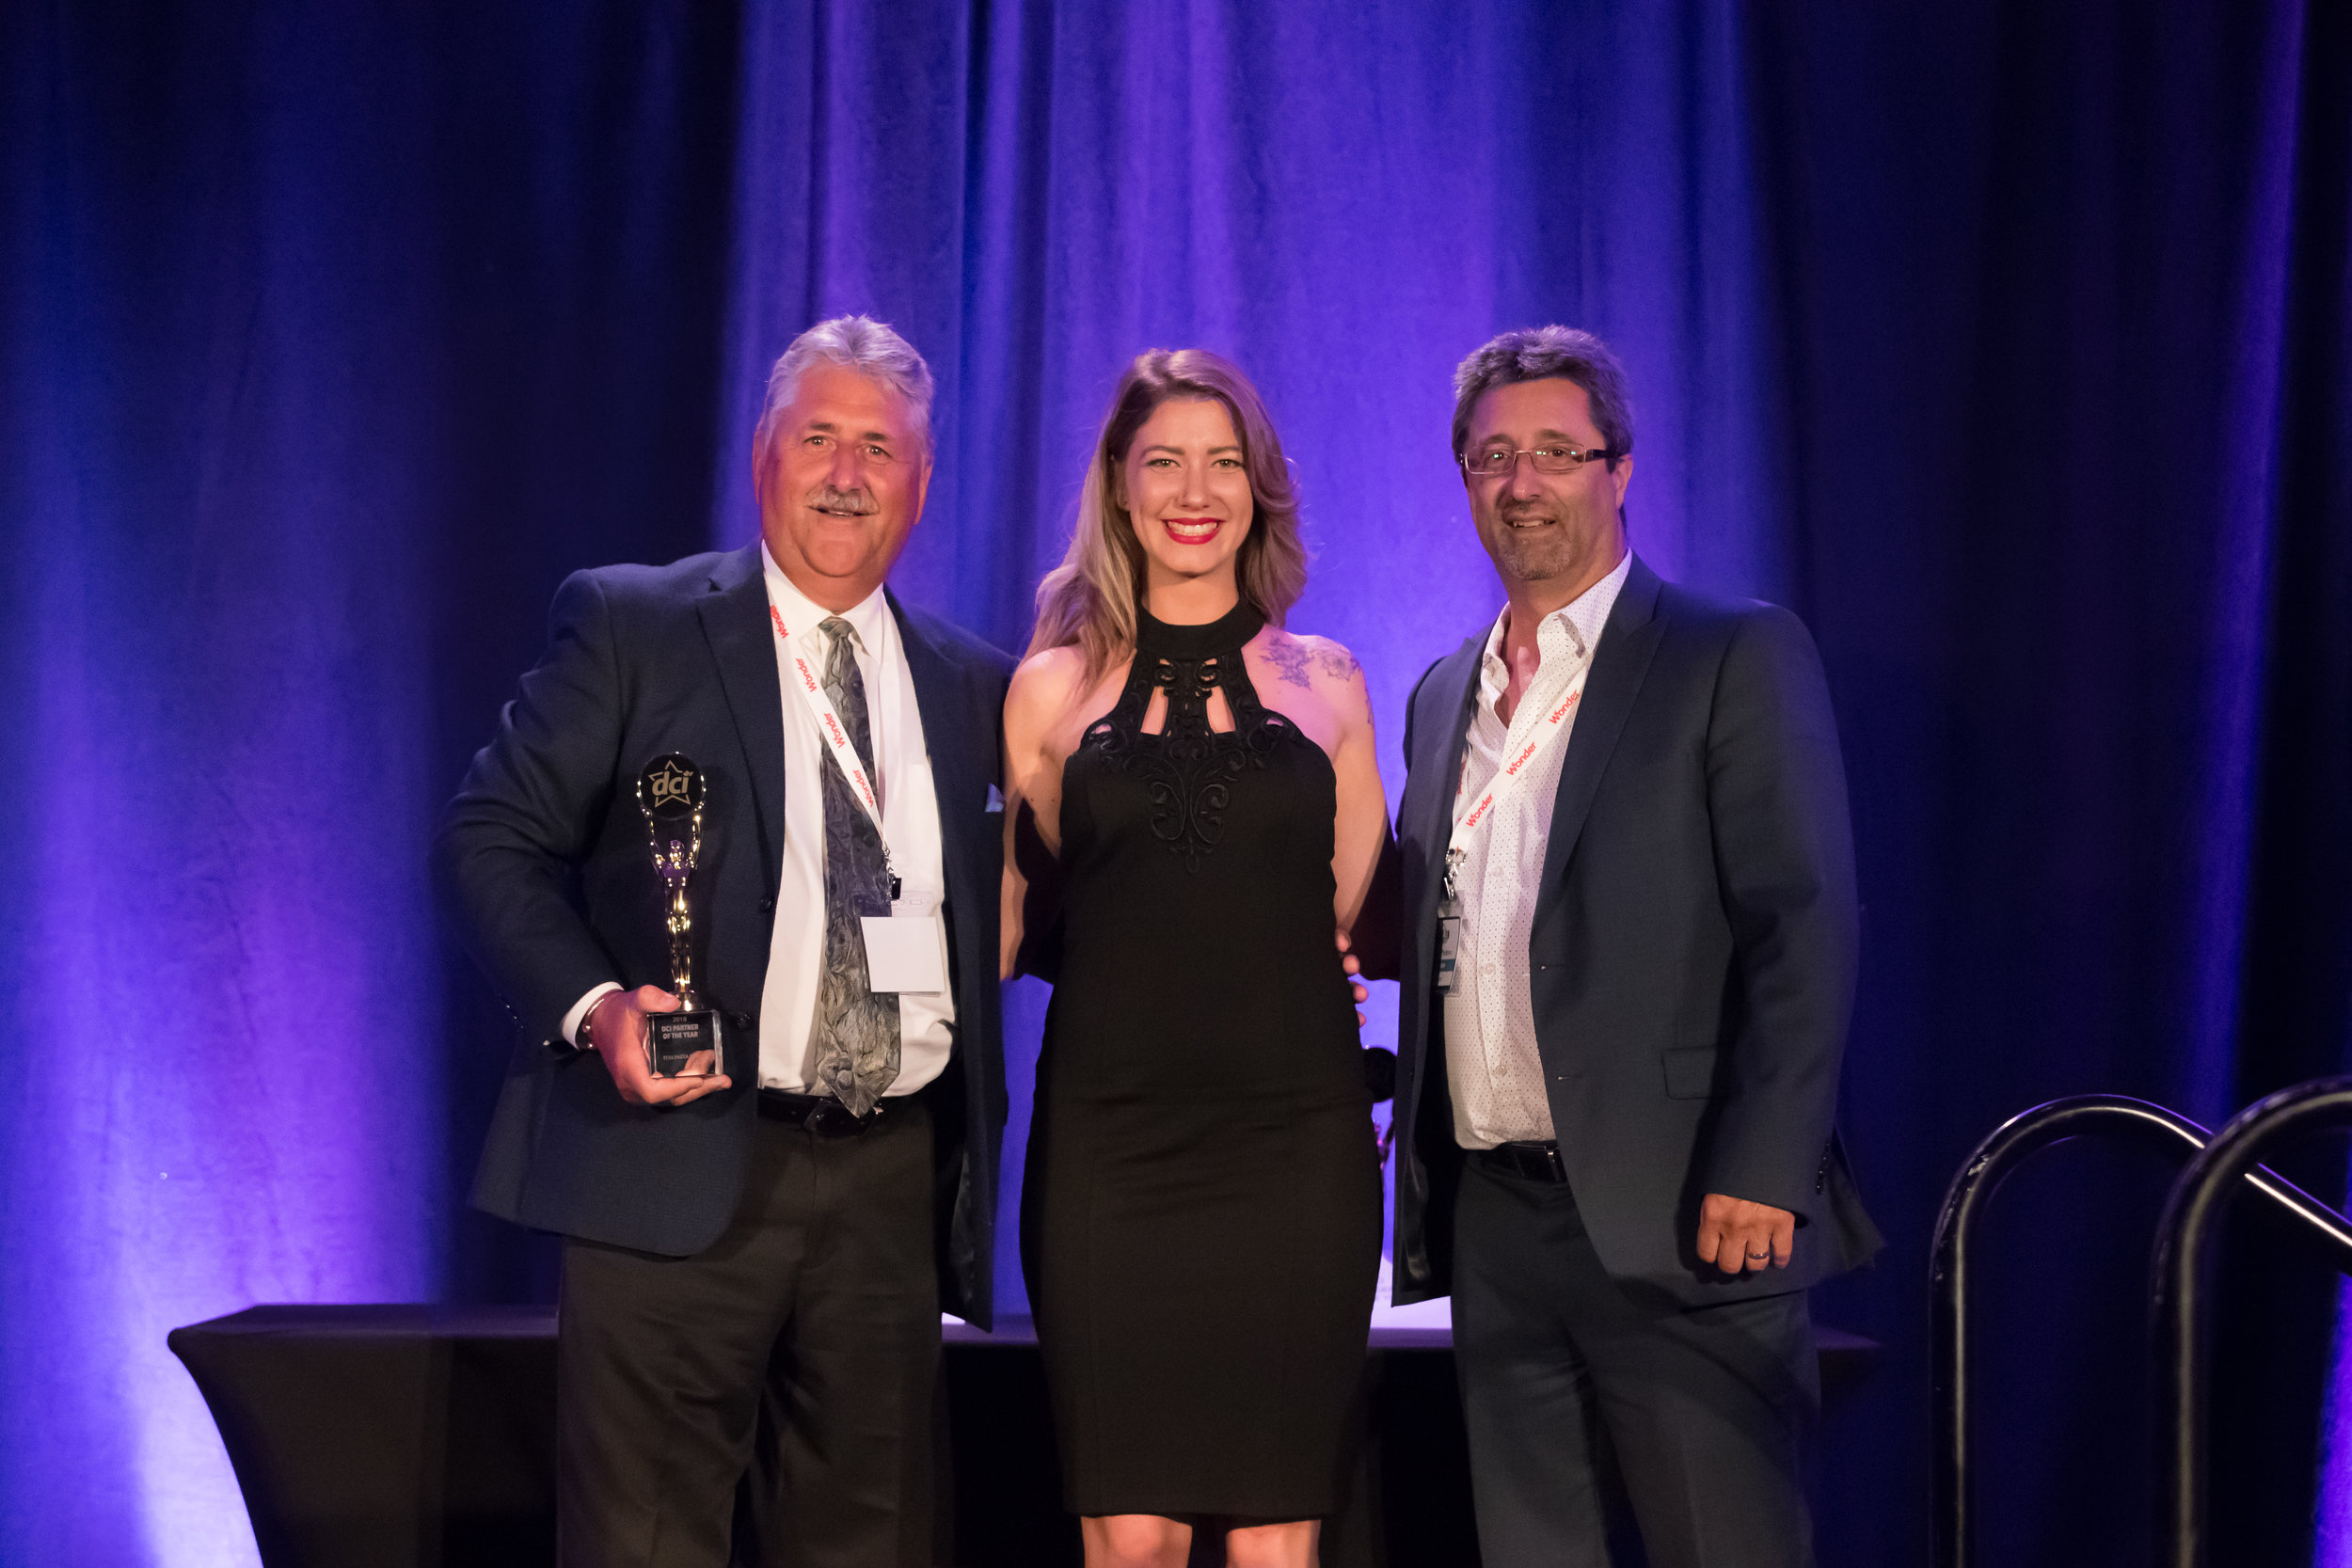 Greg McGrath (Left) and Mike Medeiros (Right) Pose With Star Awards Presenter (Centre)